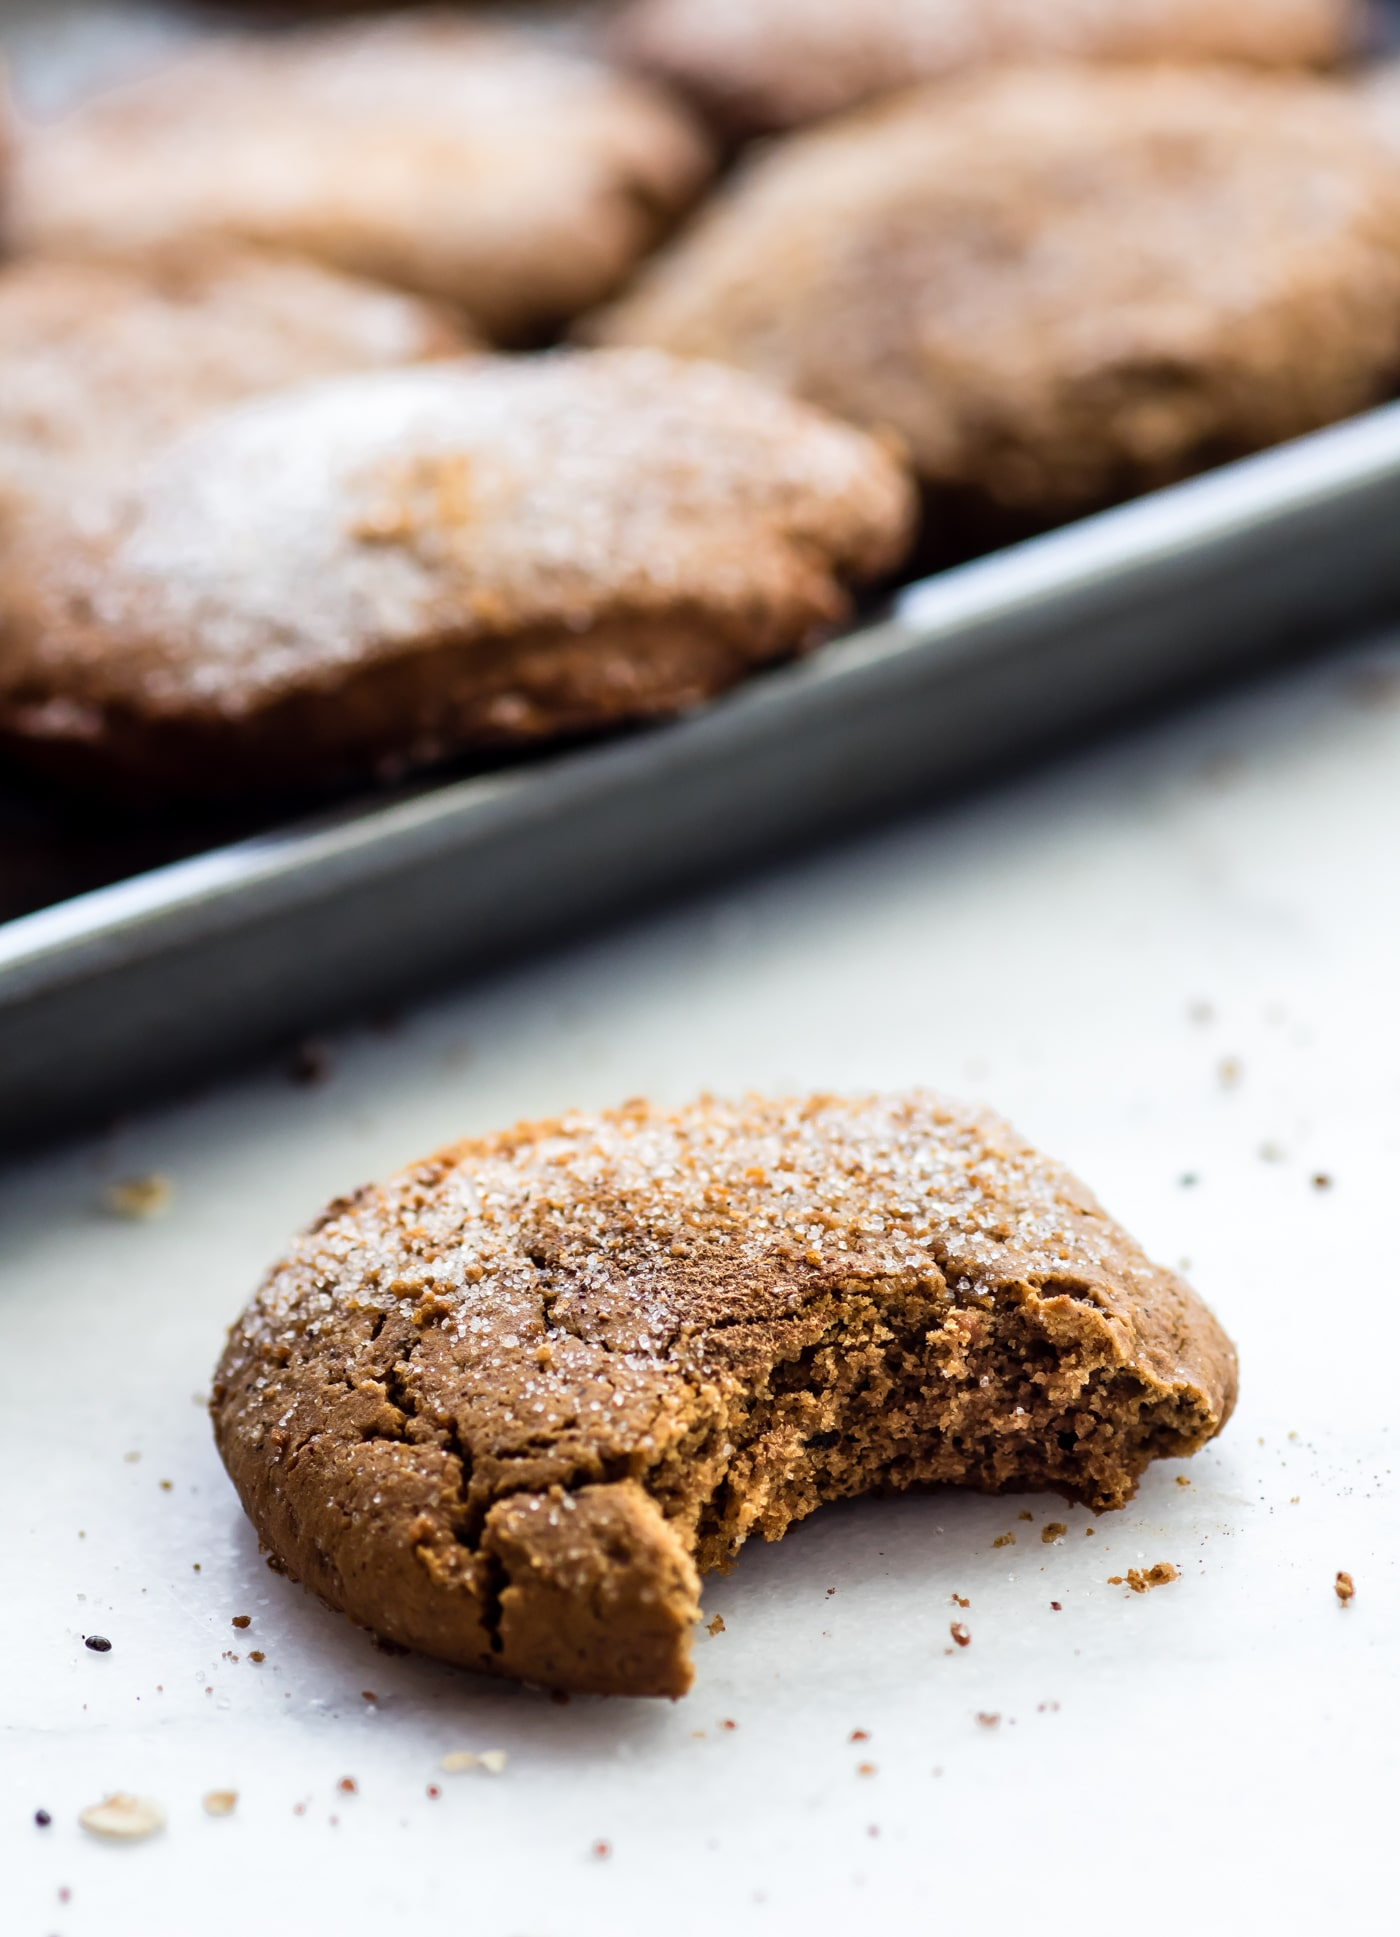 These gluten free Brown Butter Snickerdoodles are a must make holiday cookie. Simple to make, egg free, and made with real ingredients. The brown butter makes these snickerdoodle cookies extra flavorful! YUM!